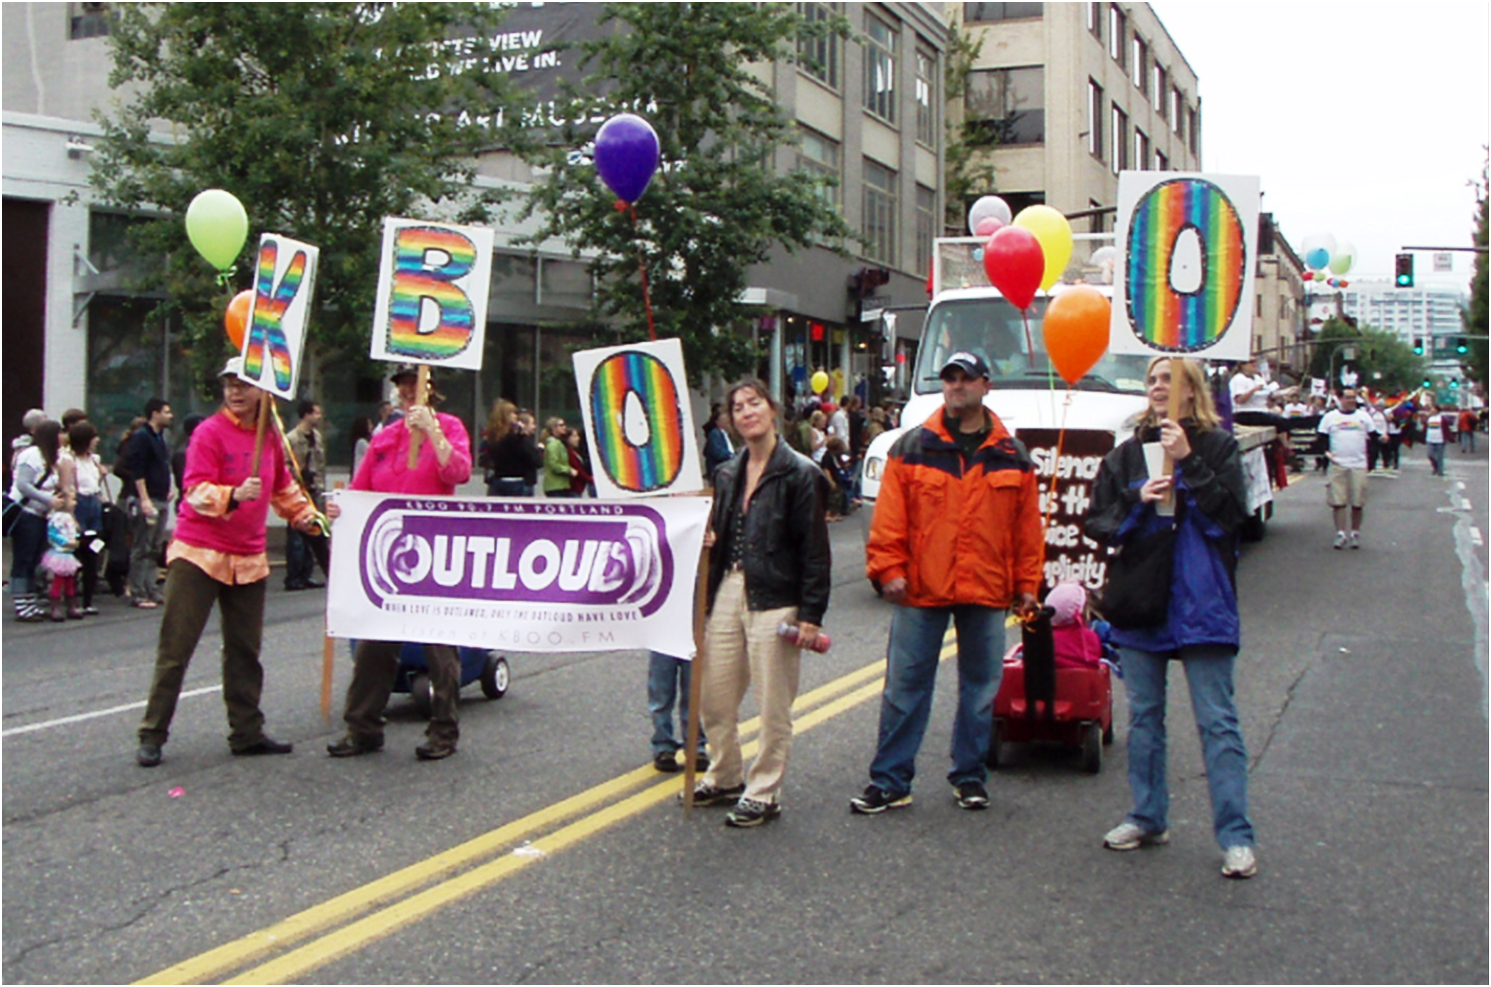 KBOO & Out Loud radio in Portland's Pride parade